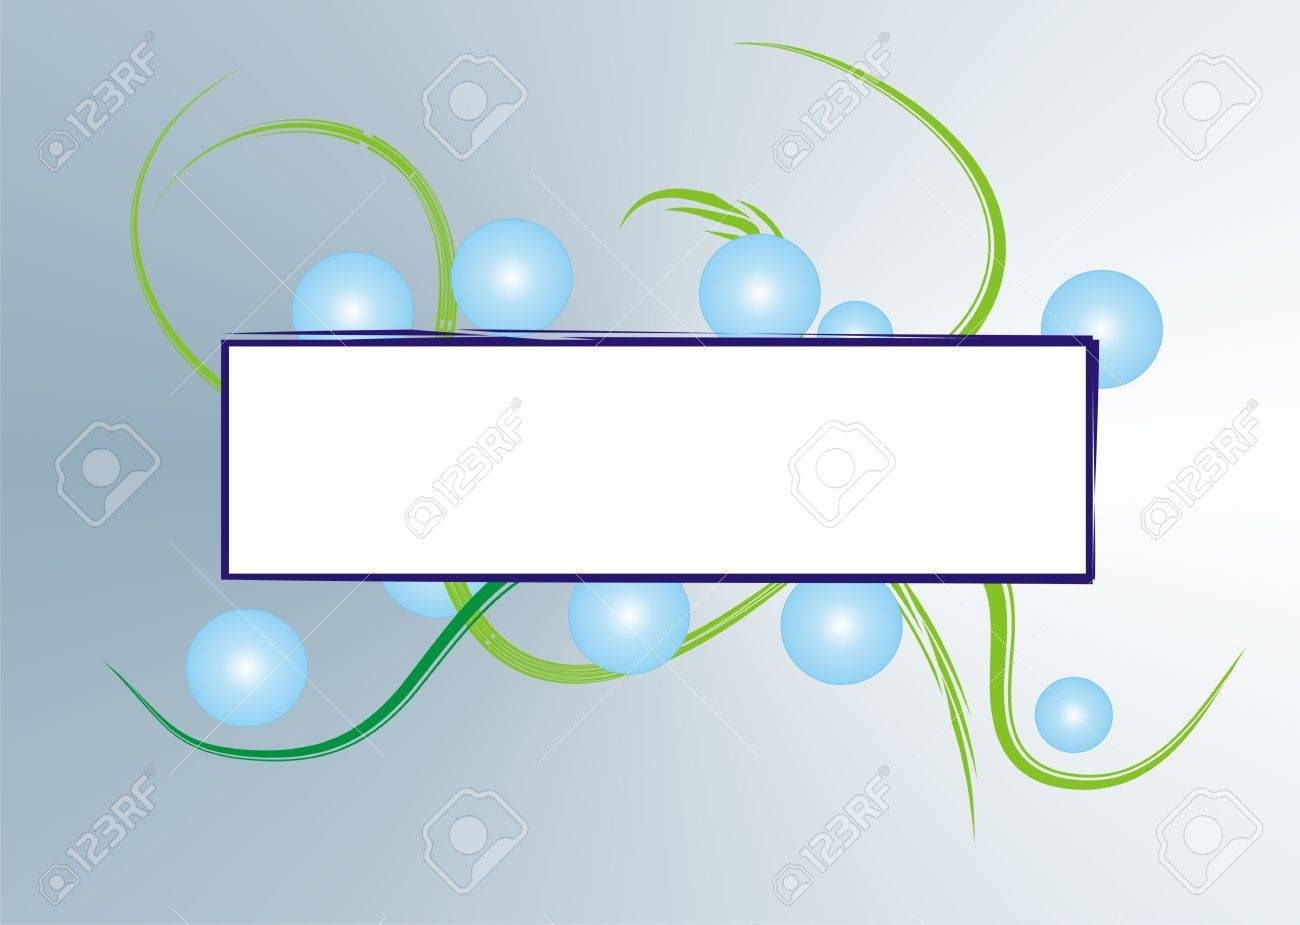 Business card frame for text stock photo picture and royalty business card frame for text stock photo 6310291 magicingreecefo Gallery